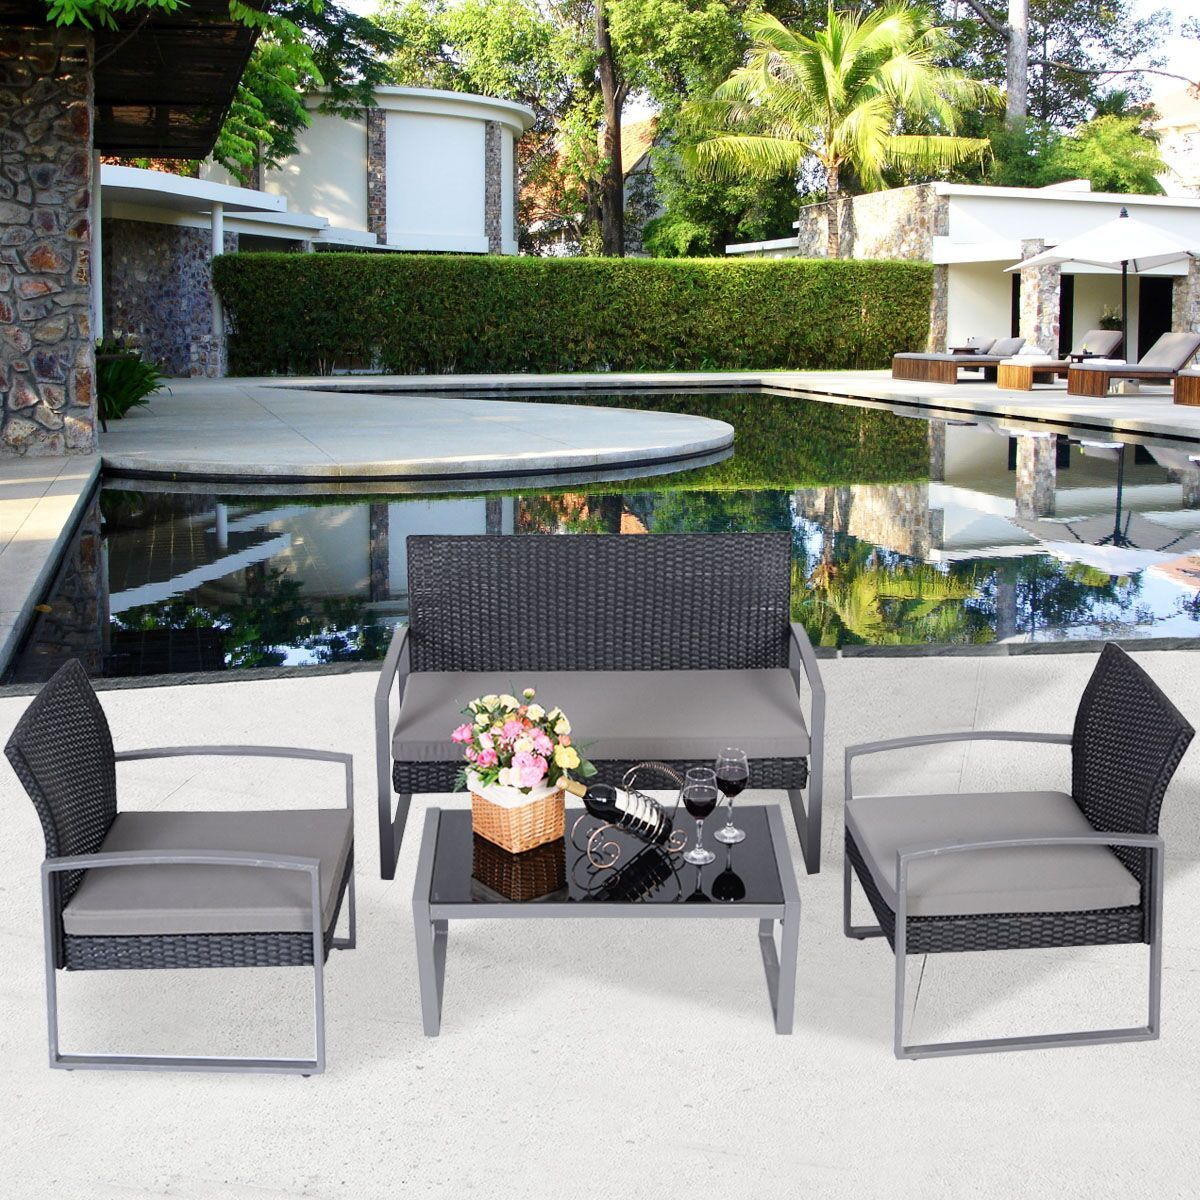 Costway 4 PCS Outdoor Patio Garden Black Rattan Wicker Sofa Set Furniture Cushioned by Costway